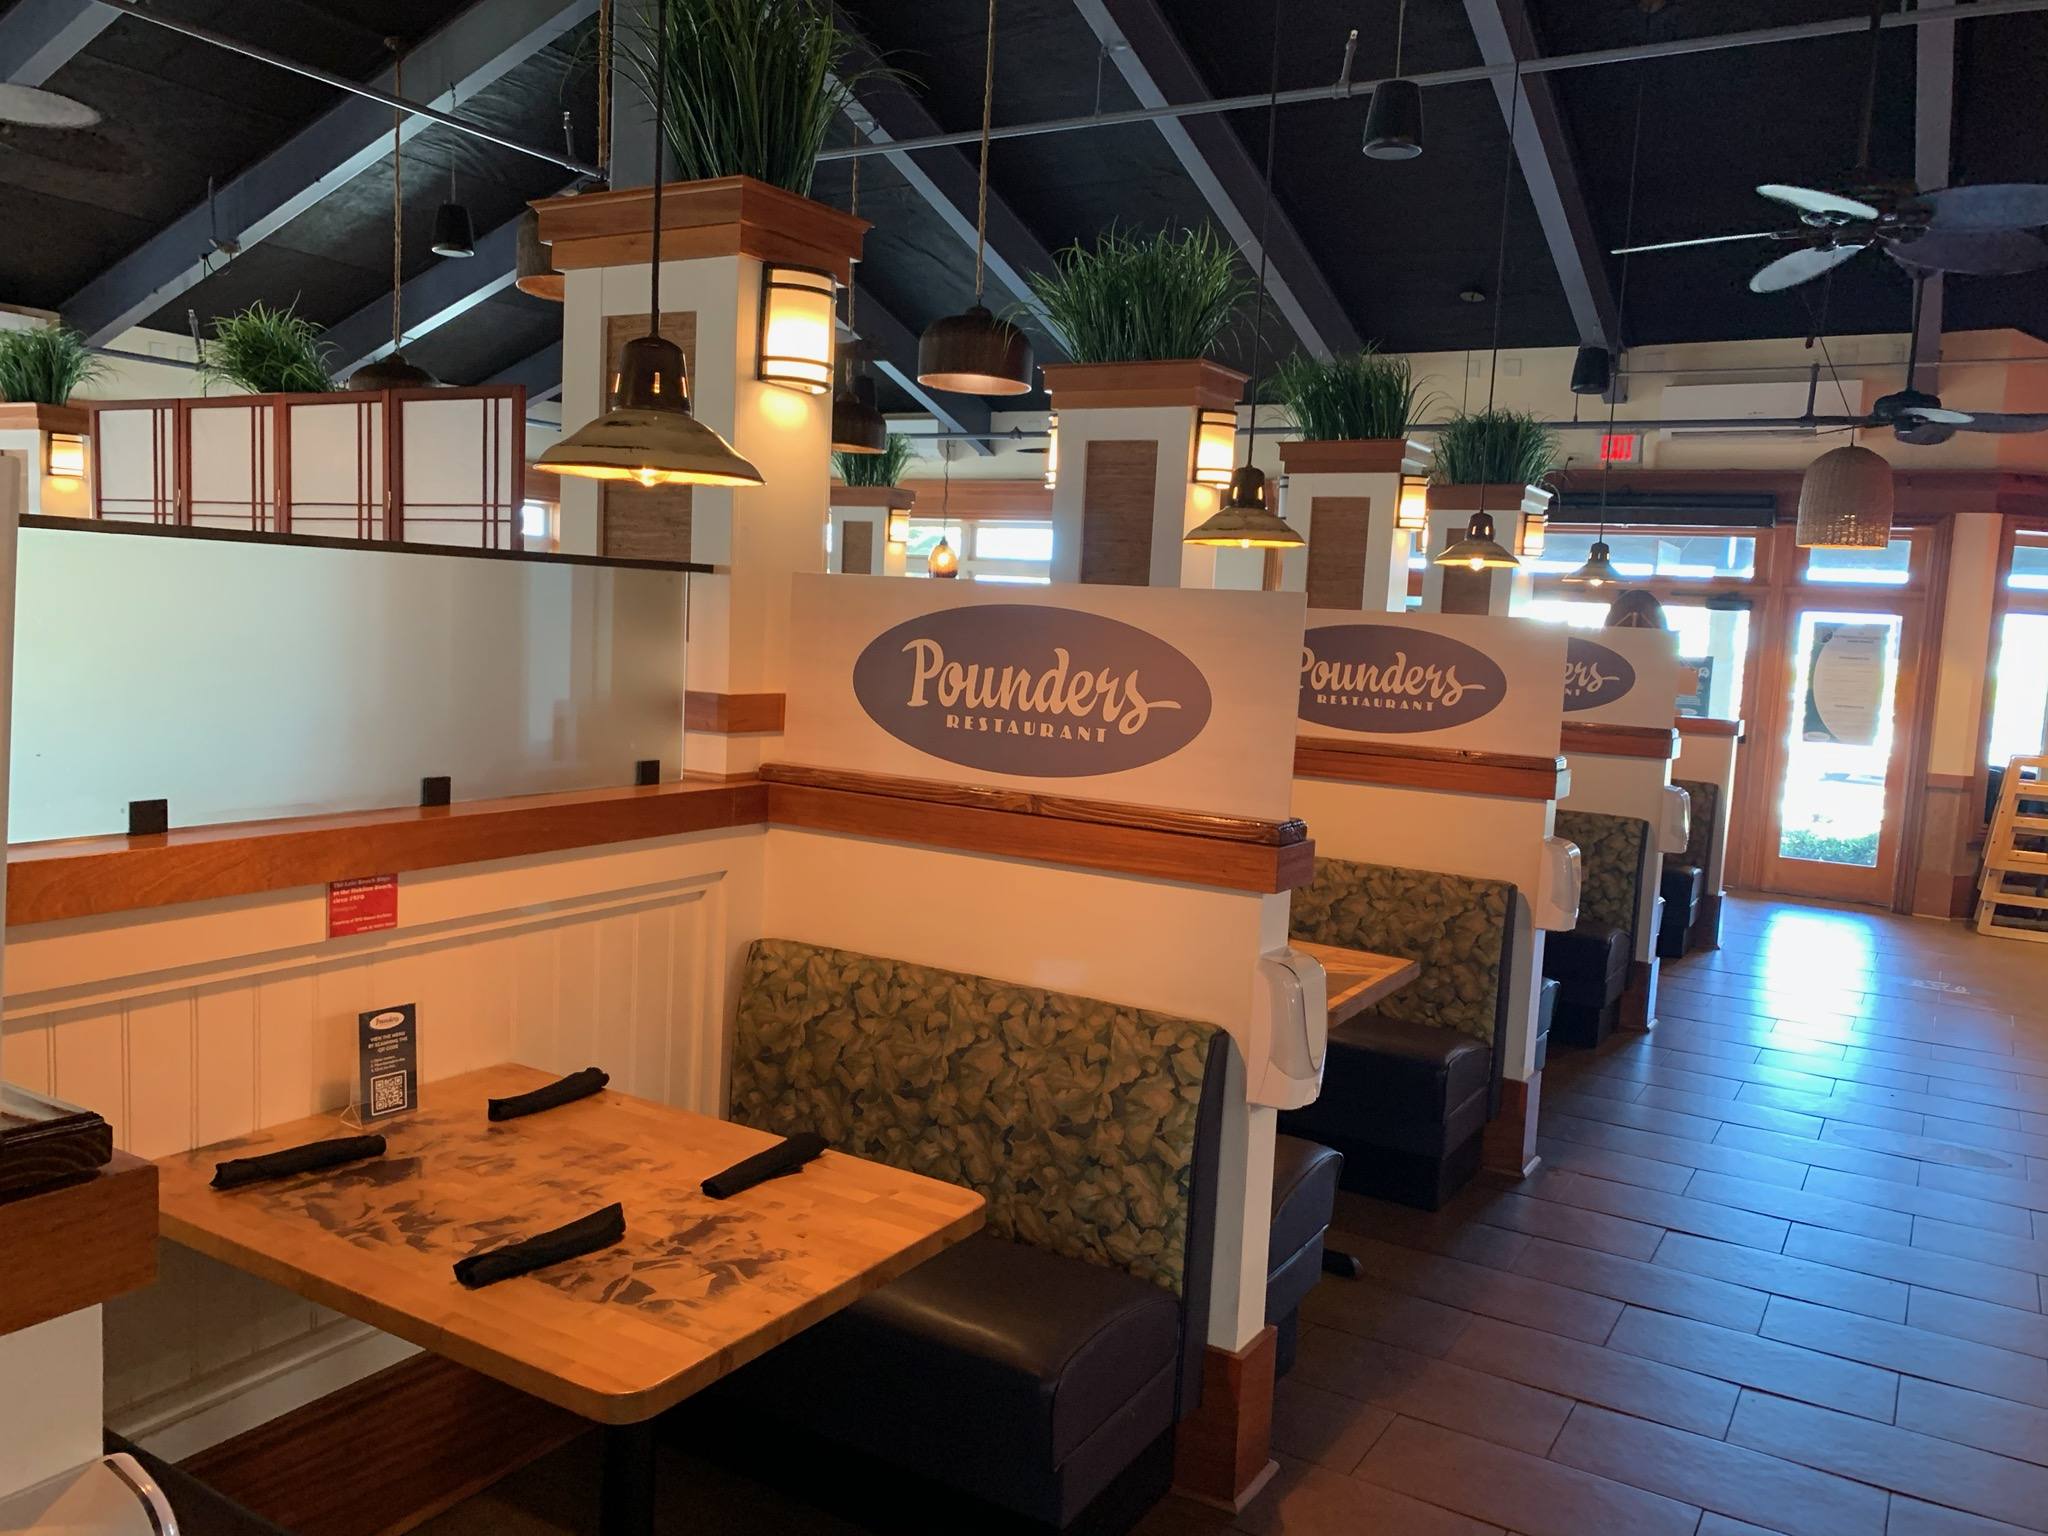 Pounders Restaurant is back open and leading the way